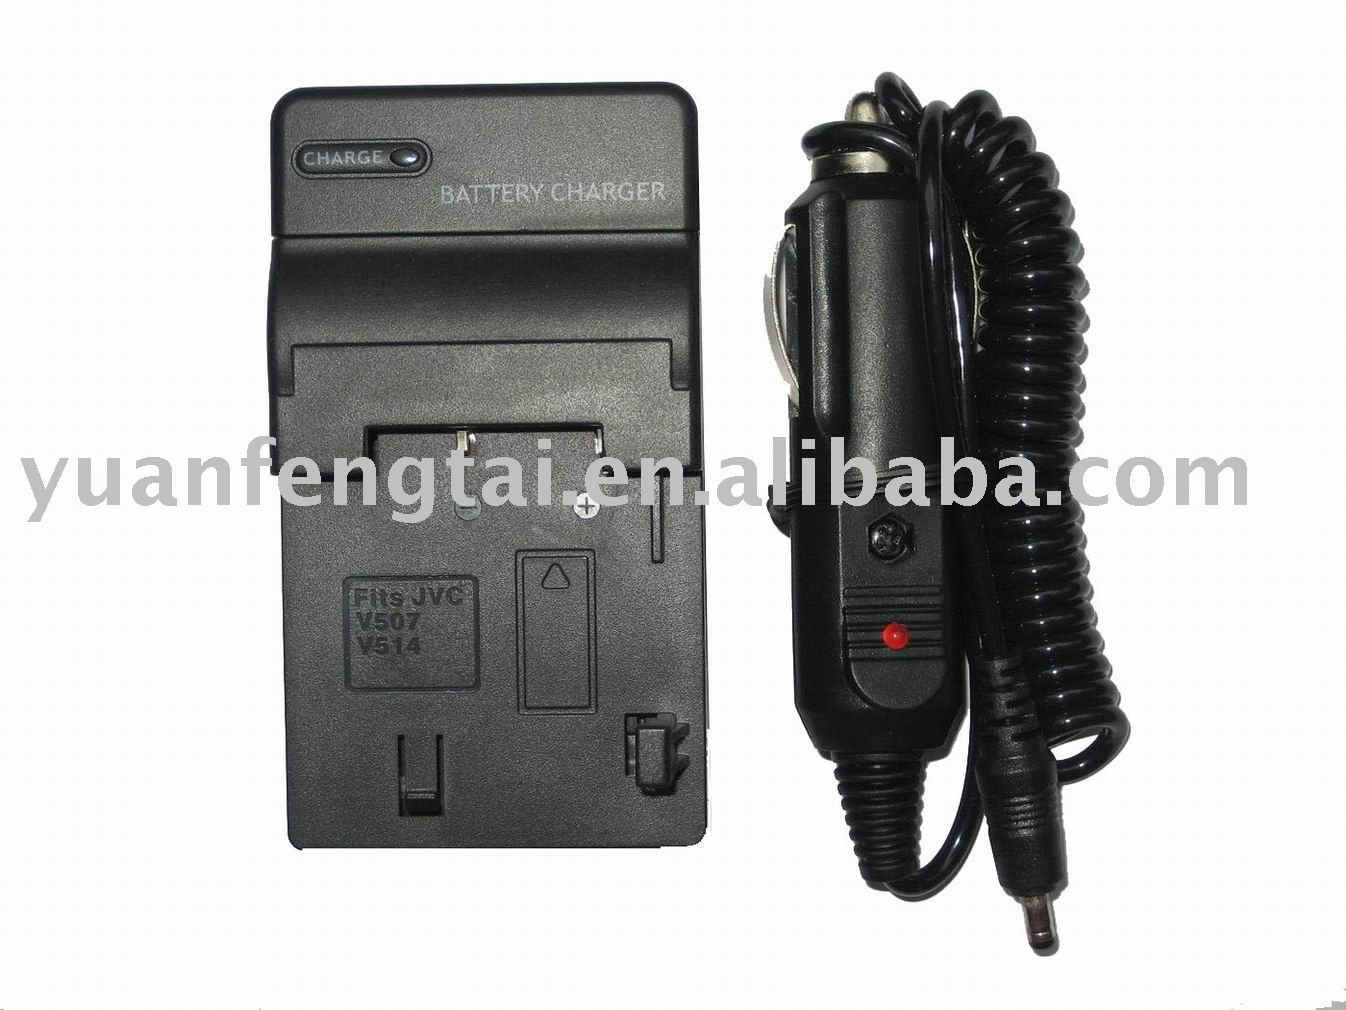 BN-V507 Battery Charger Camcorder Battery Charger for JVC BN-V507